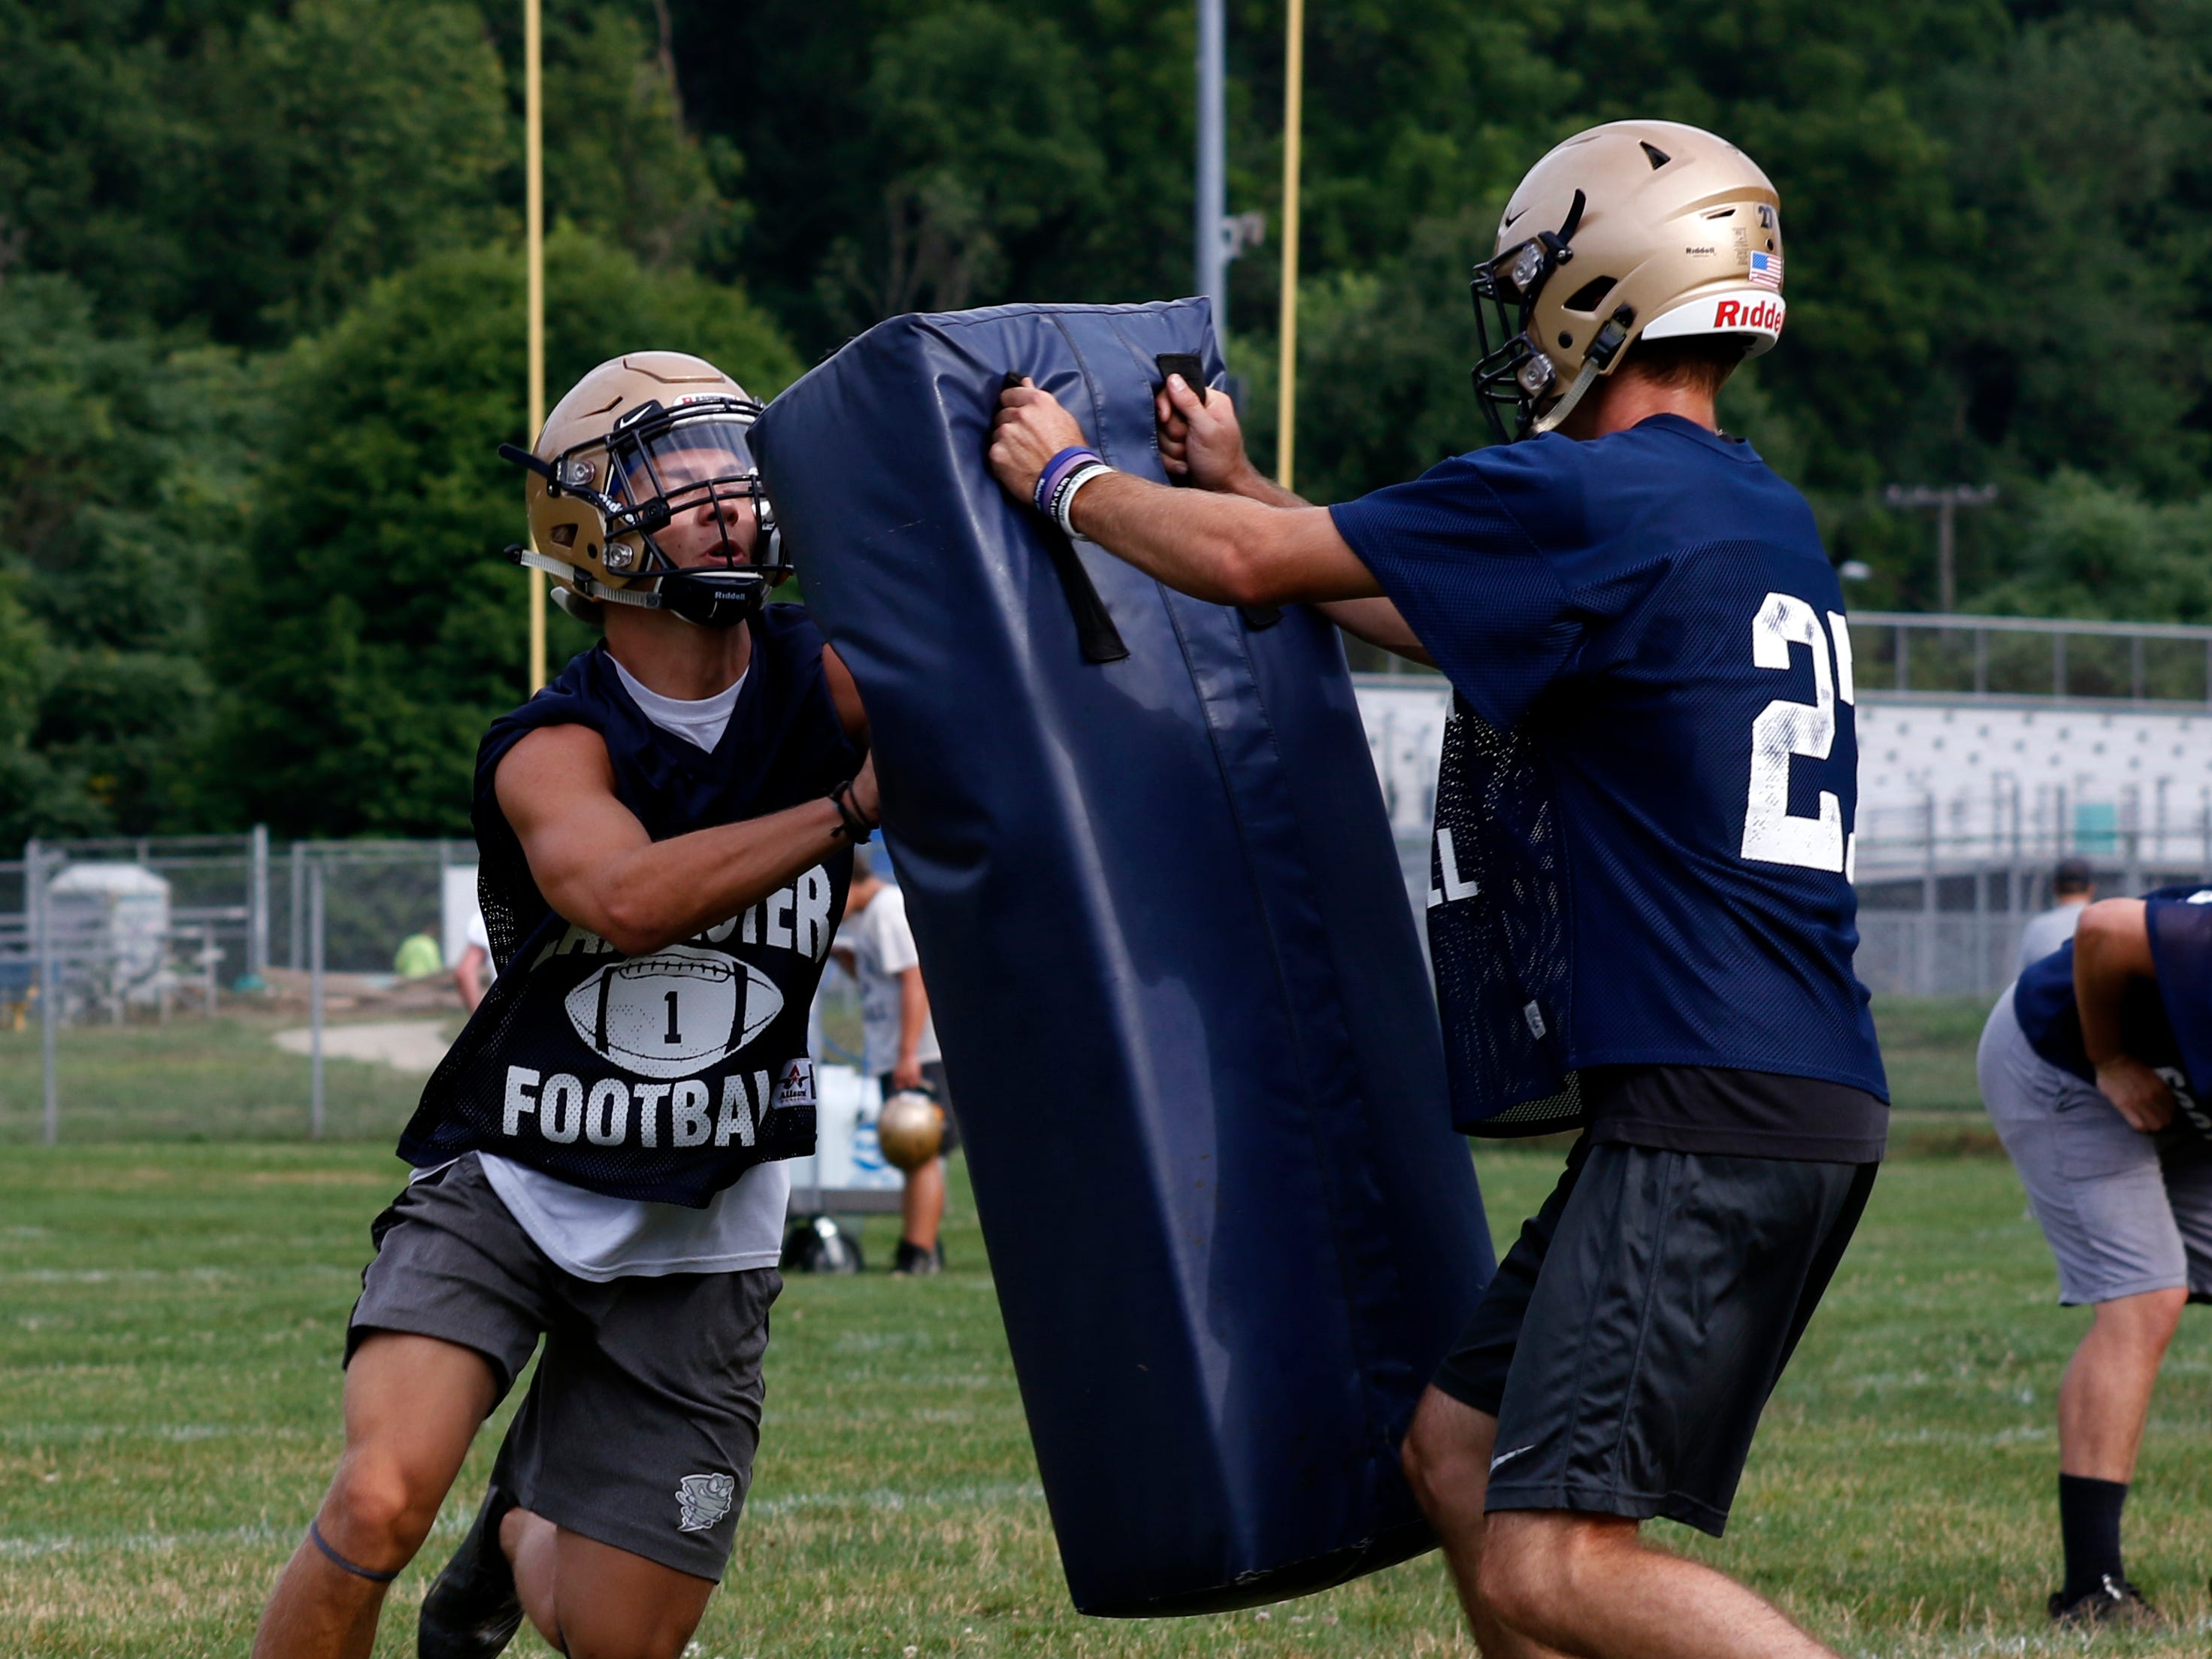 Lancaster football players take part in the first day of a two-a-day practice Monday morning, July 30, 2018, at Lancaster High School.